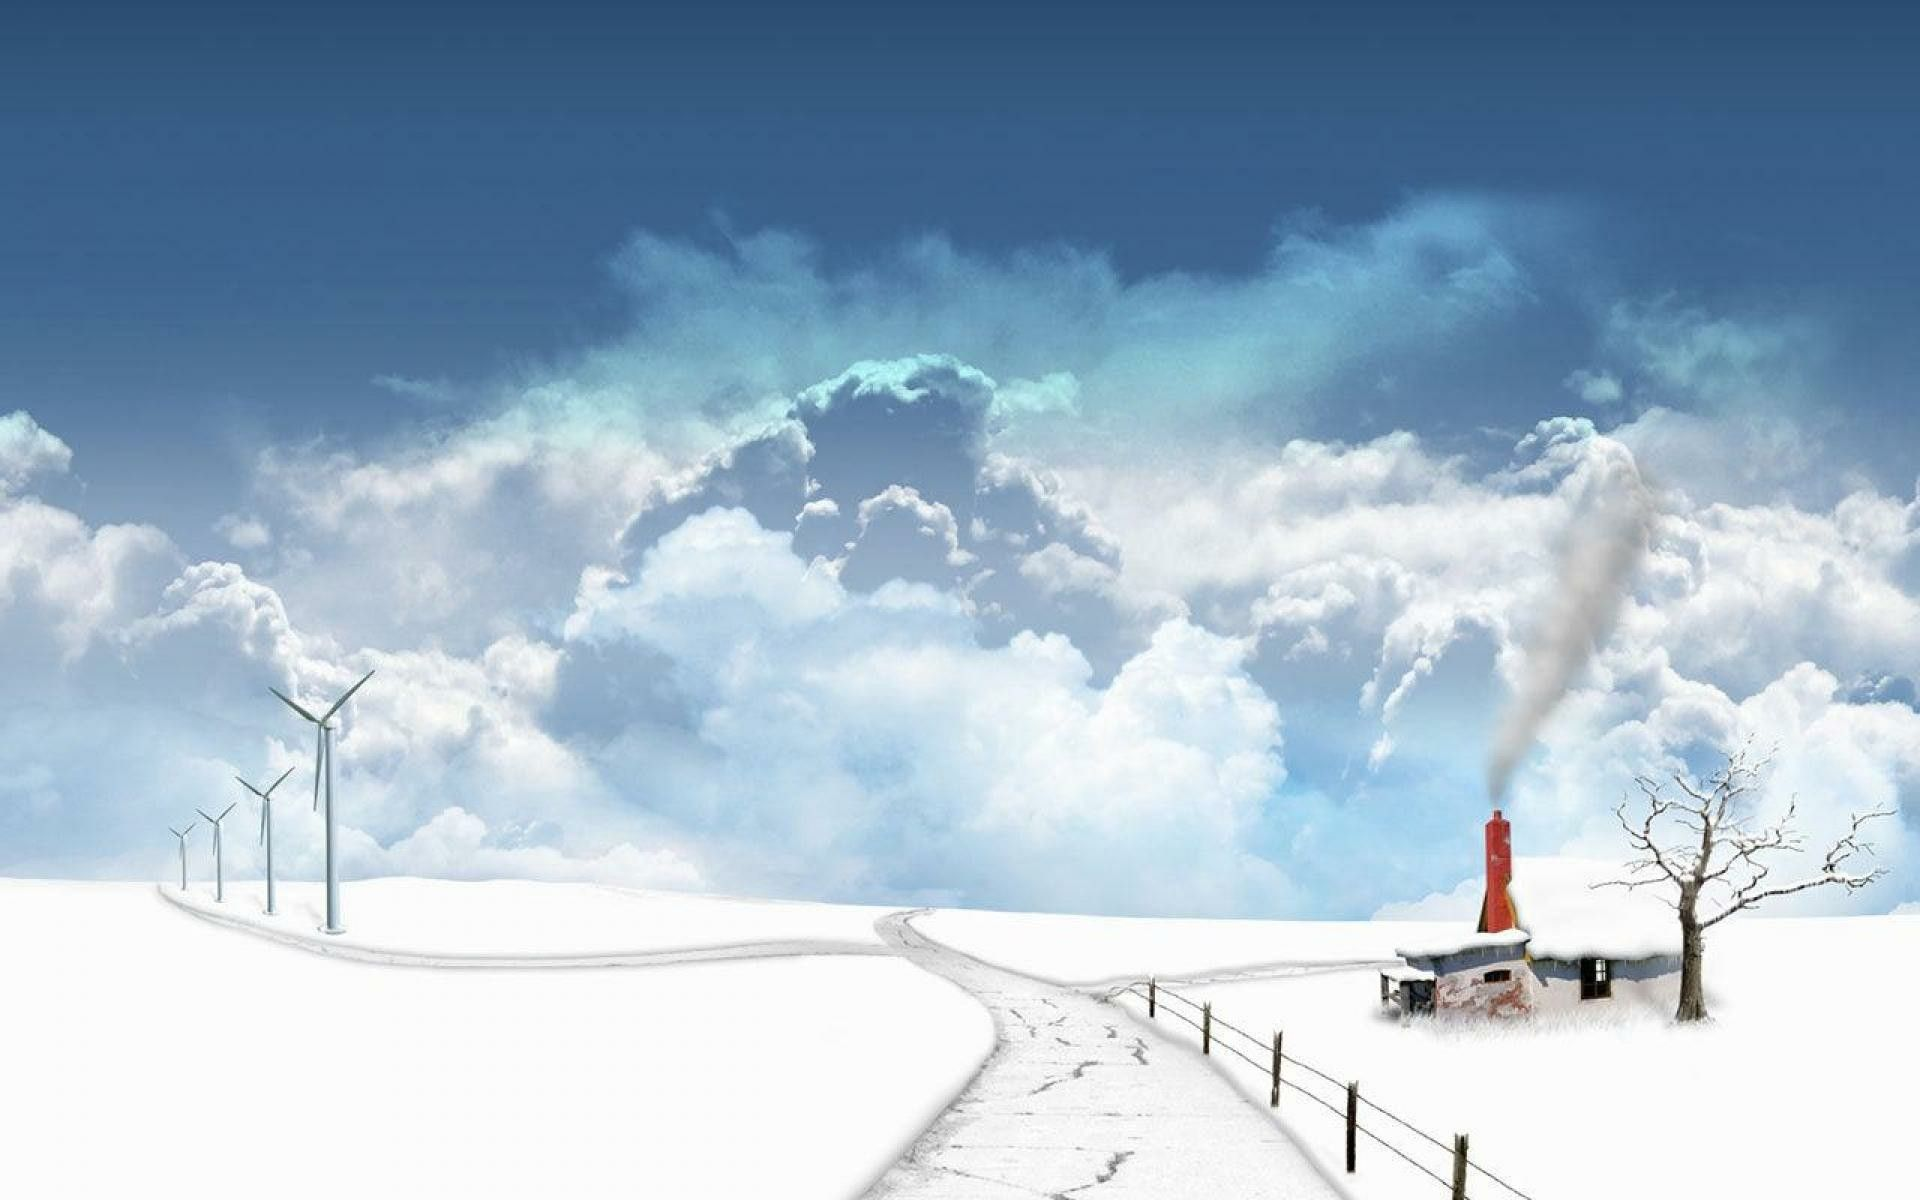 Snow Anime Wallpaper Hd Snow Scenery Anime Wallpapers Top Free Snow Scenery Anime Live Anime Wall Scenery Wallpaper Anime Wallpaper Phone Background Pictures